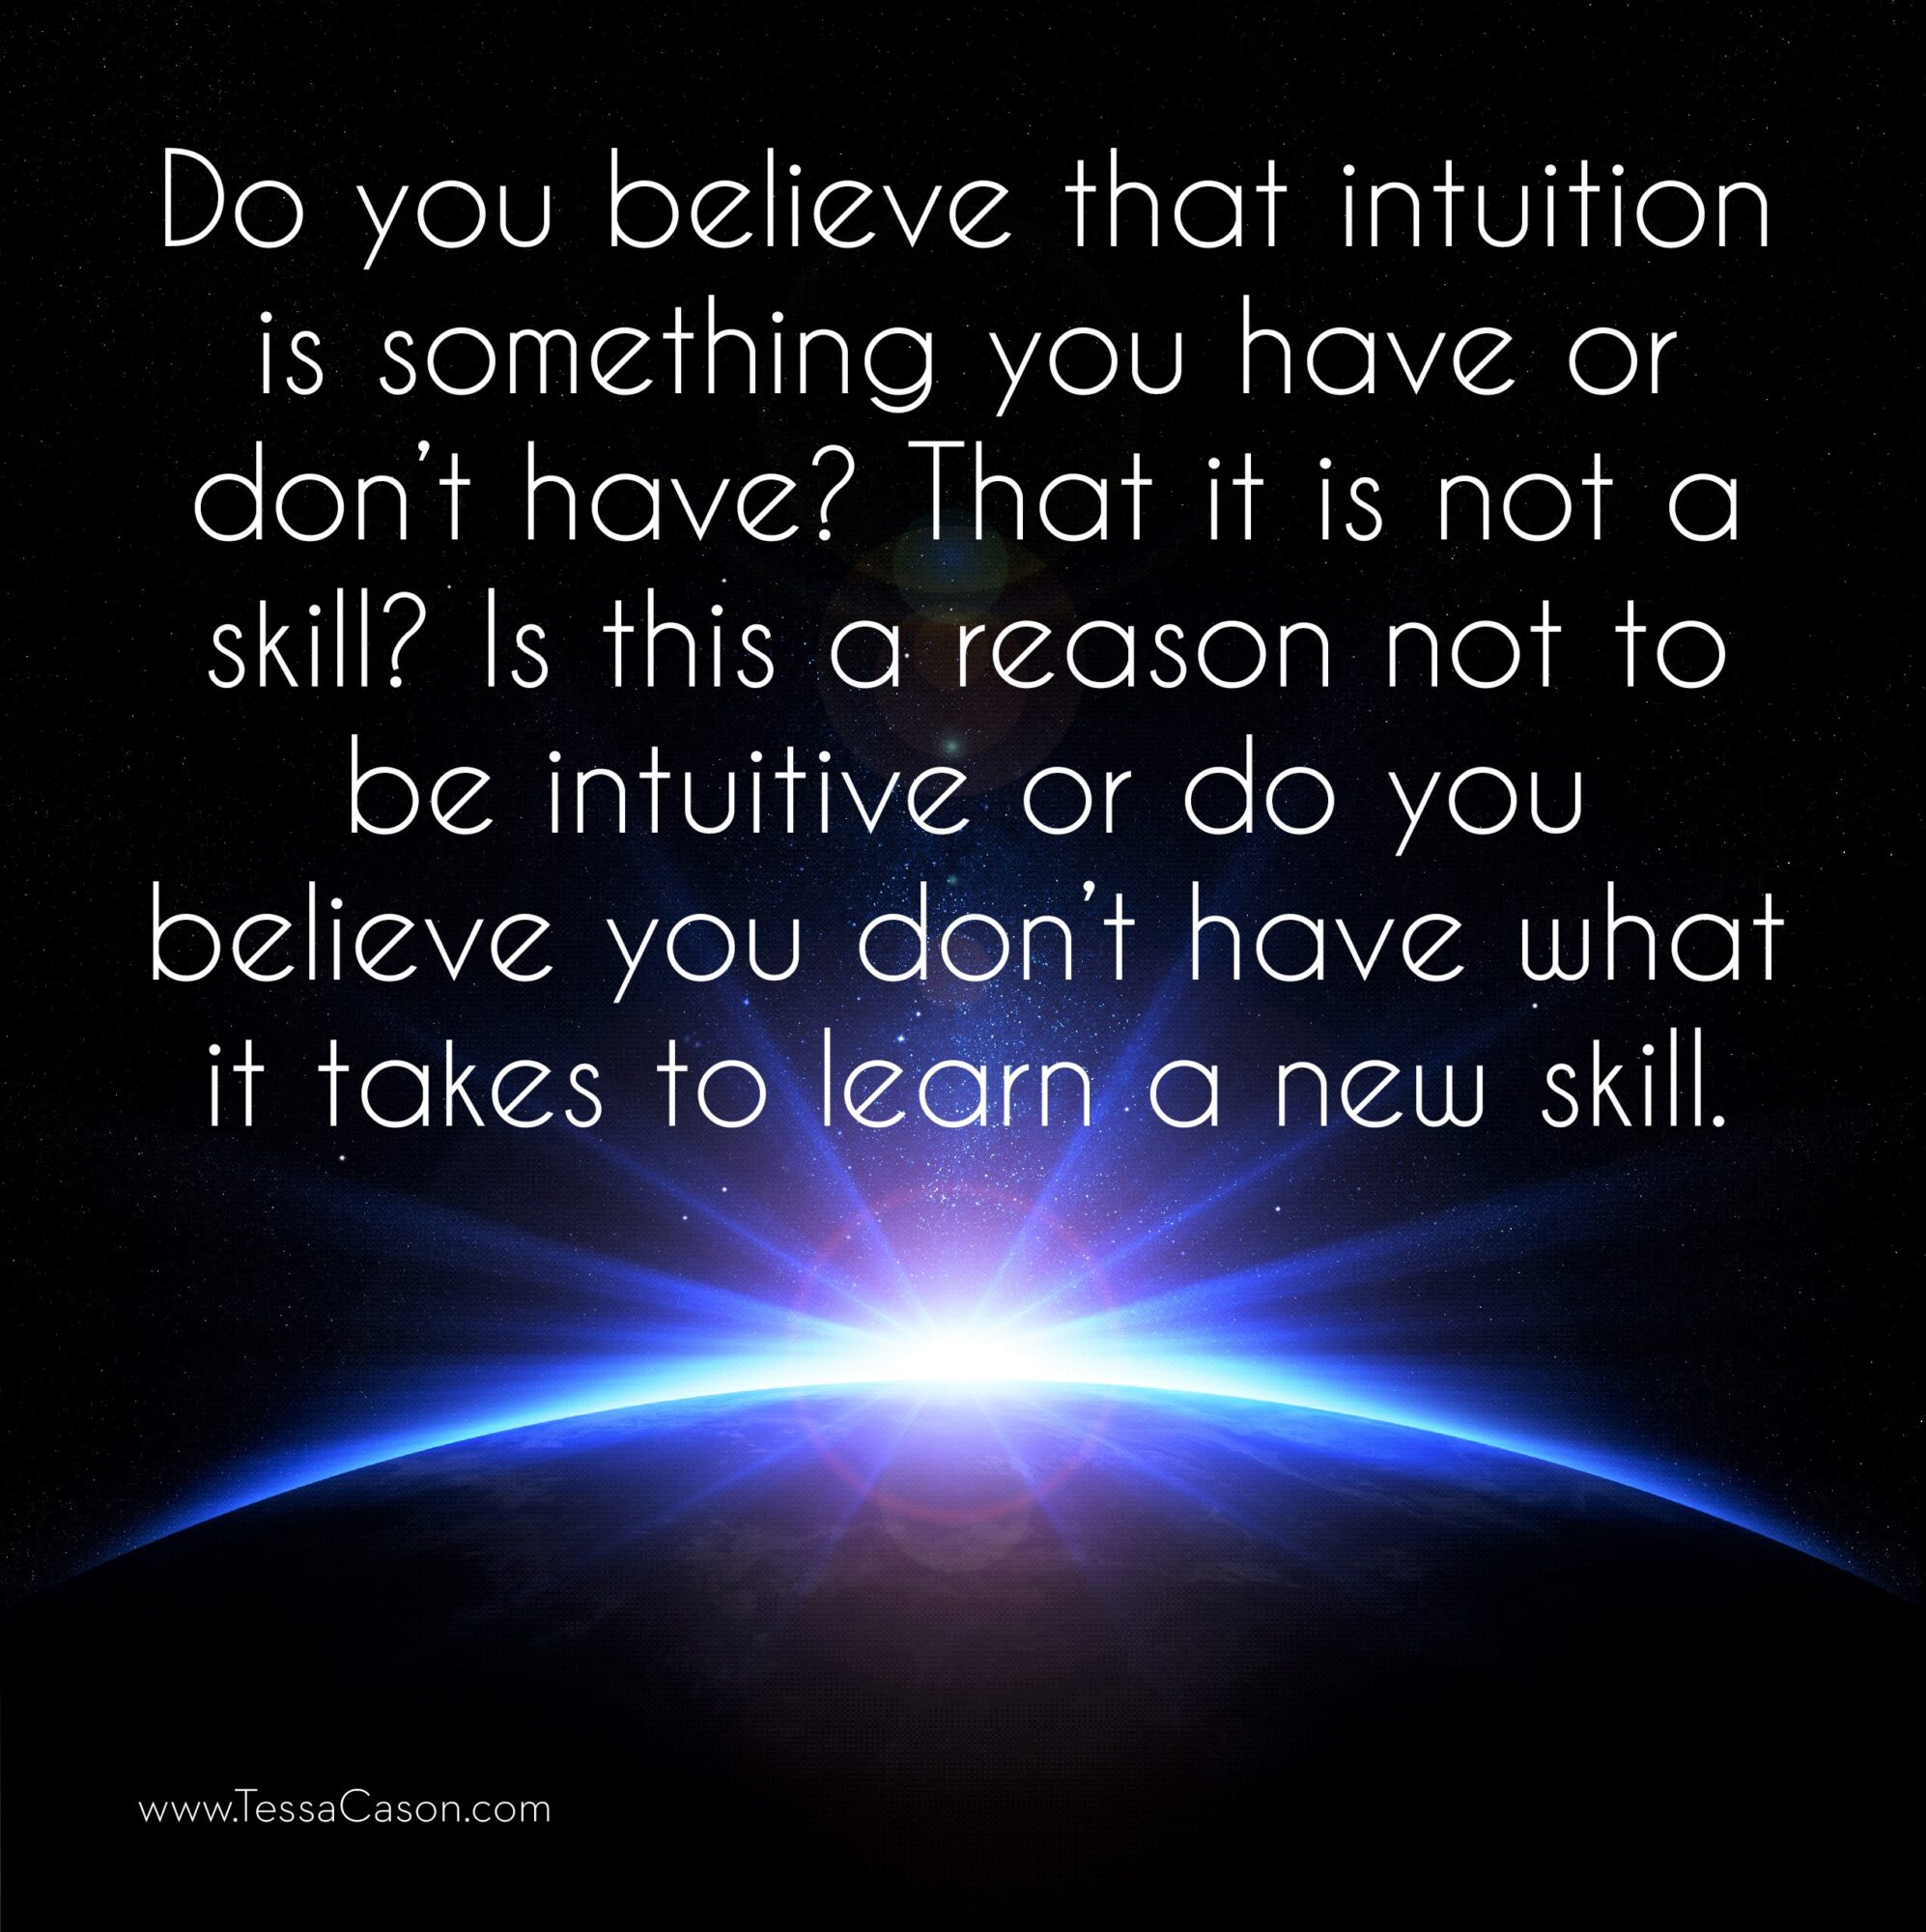 Do you believe that intuition is something you have or don't have